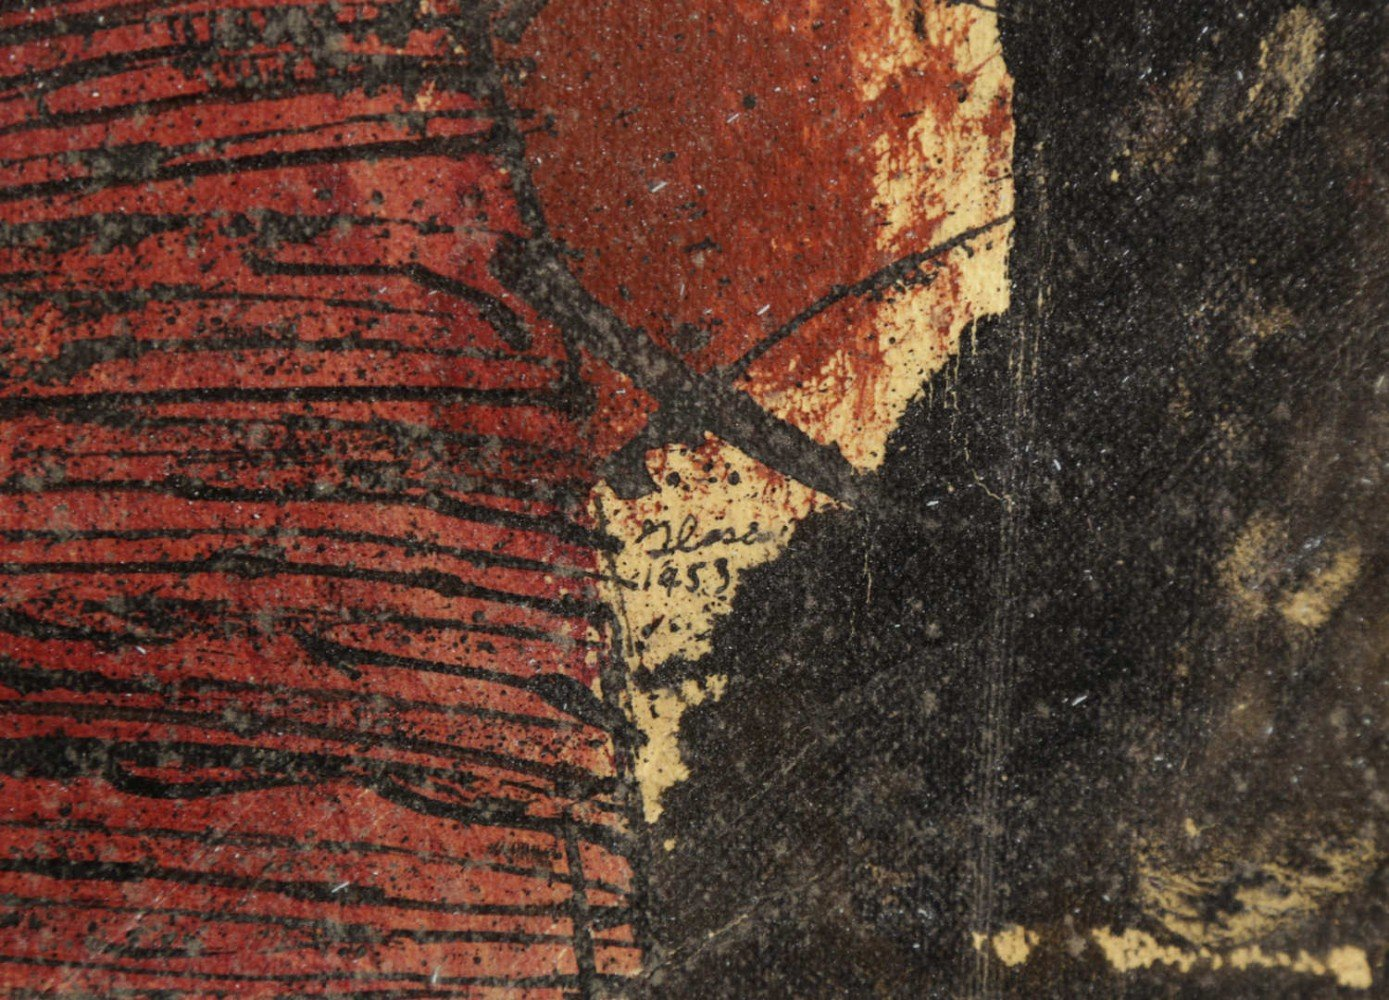 Abstract Ink and Color on Texture Paper, Titled Verso Painting: